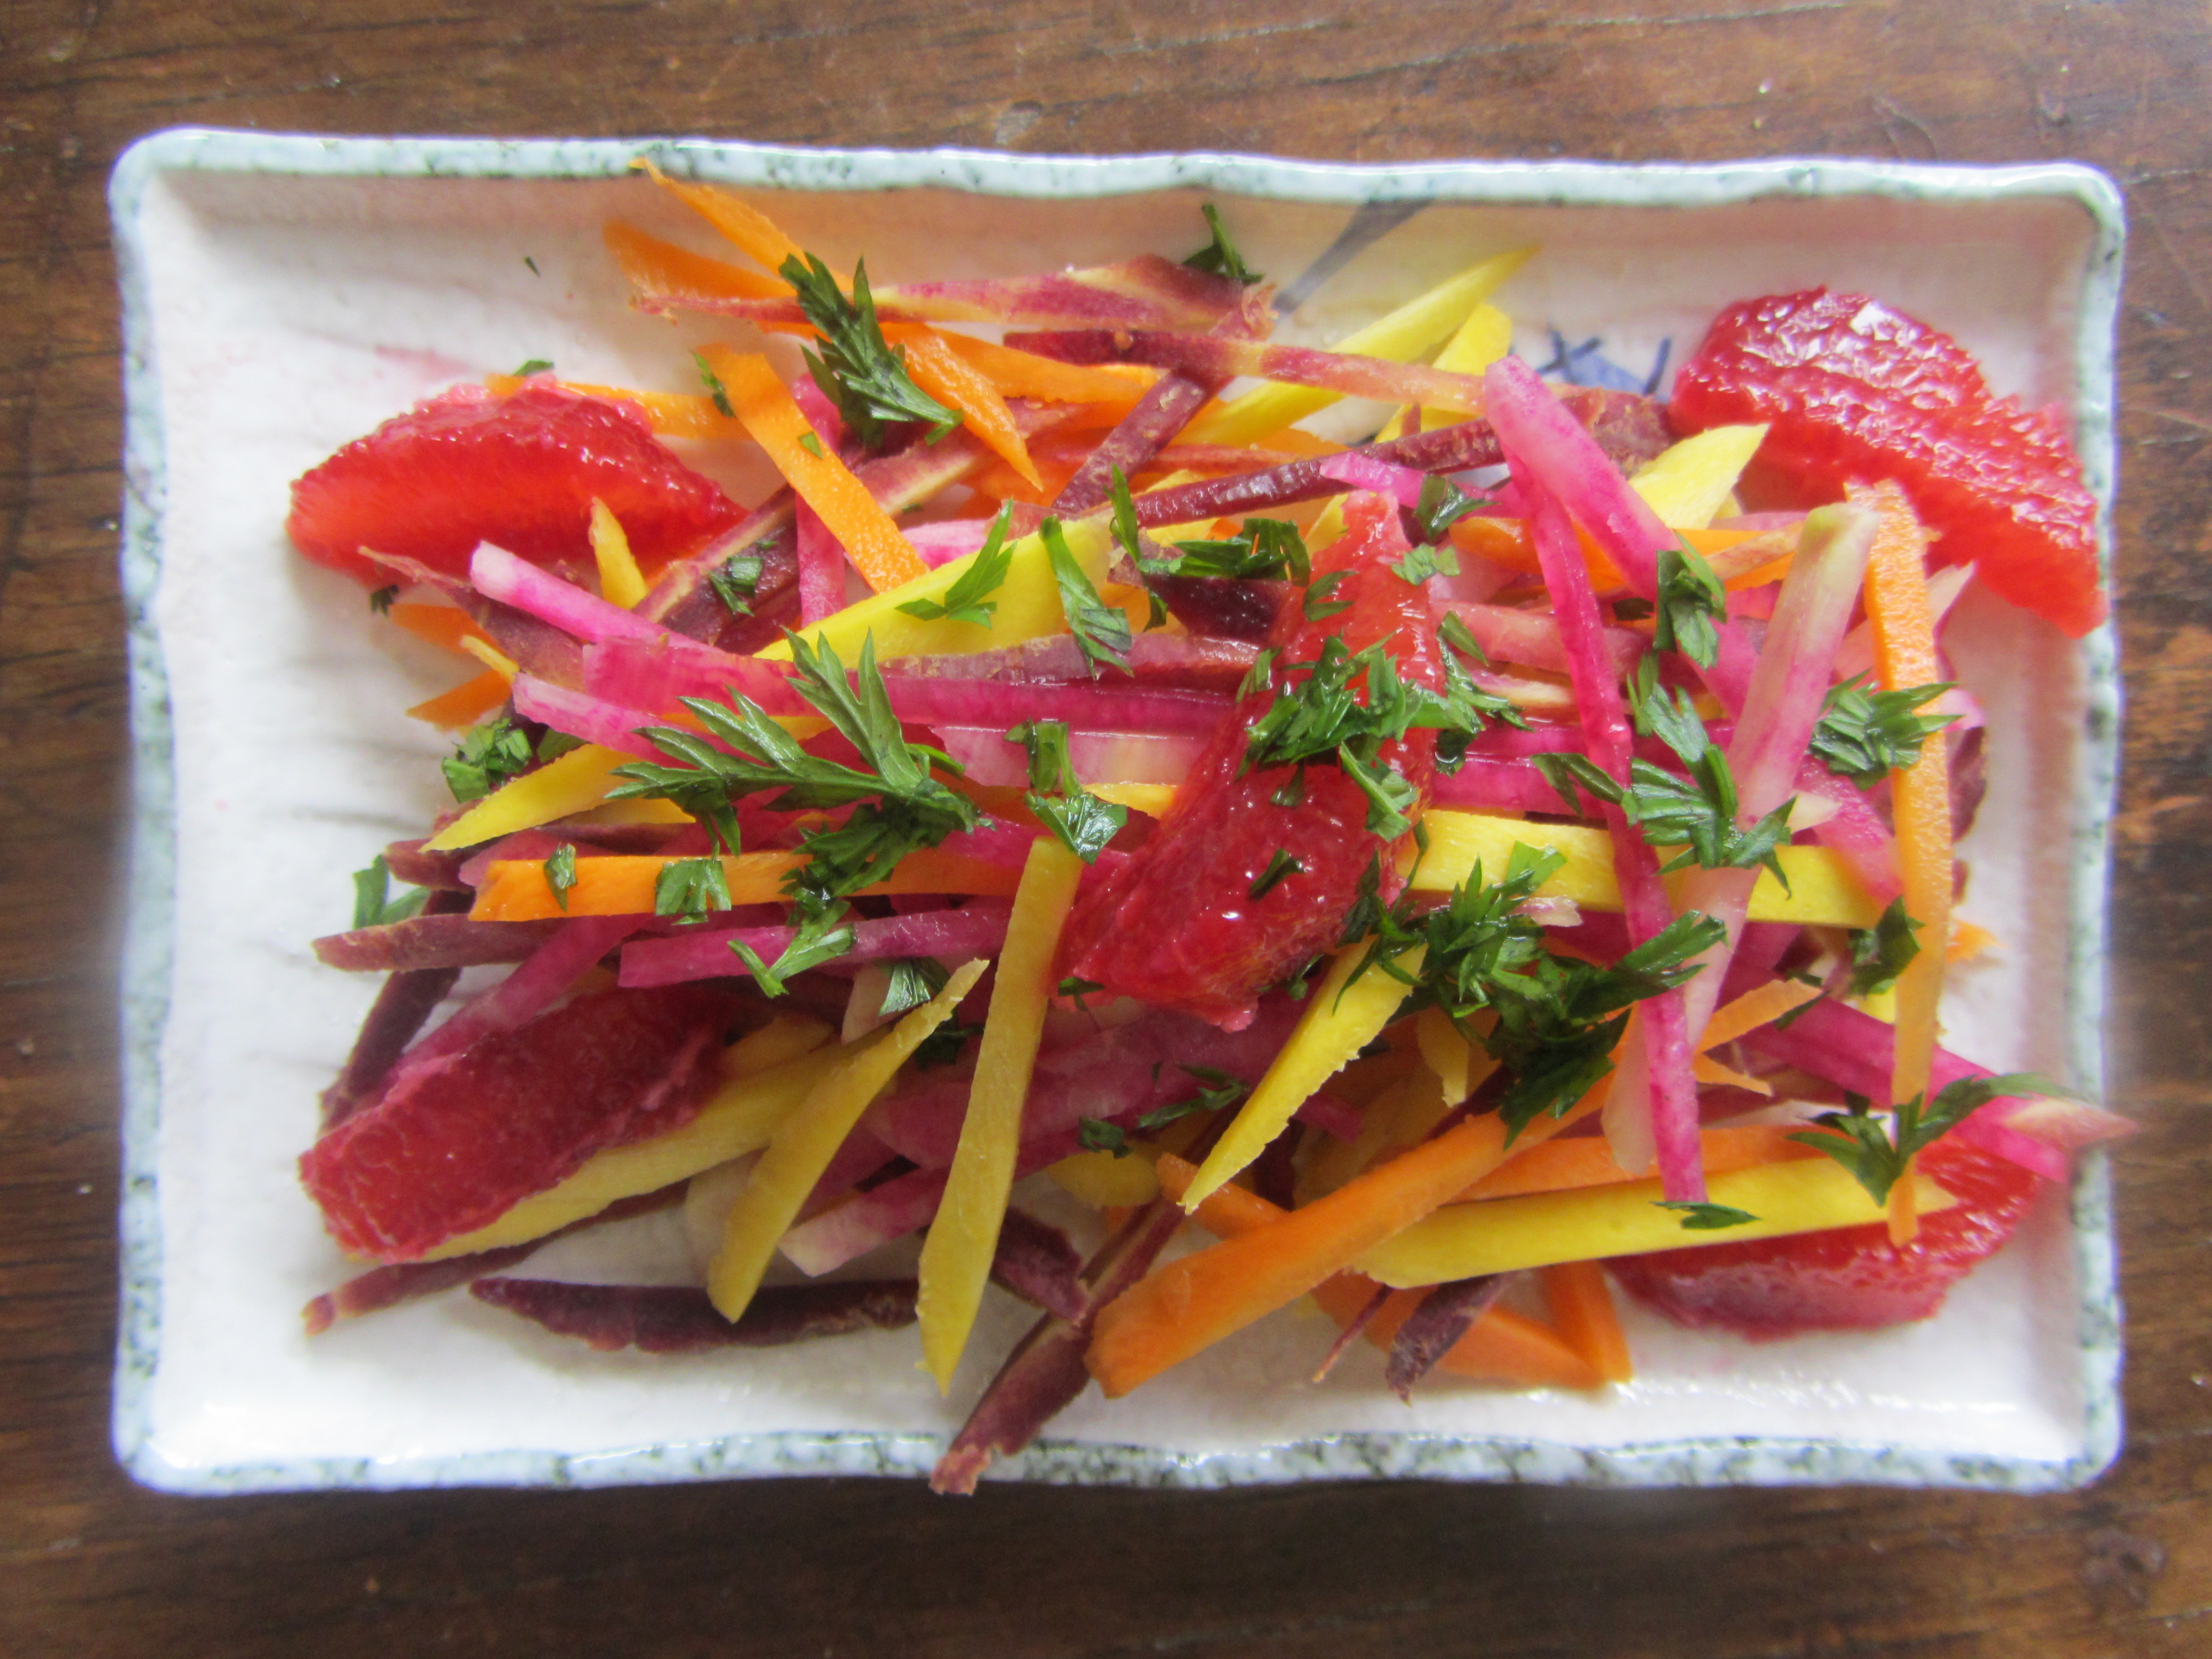 rainbow carrots, water- melon radish and blood orange saladvfb